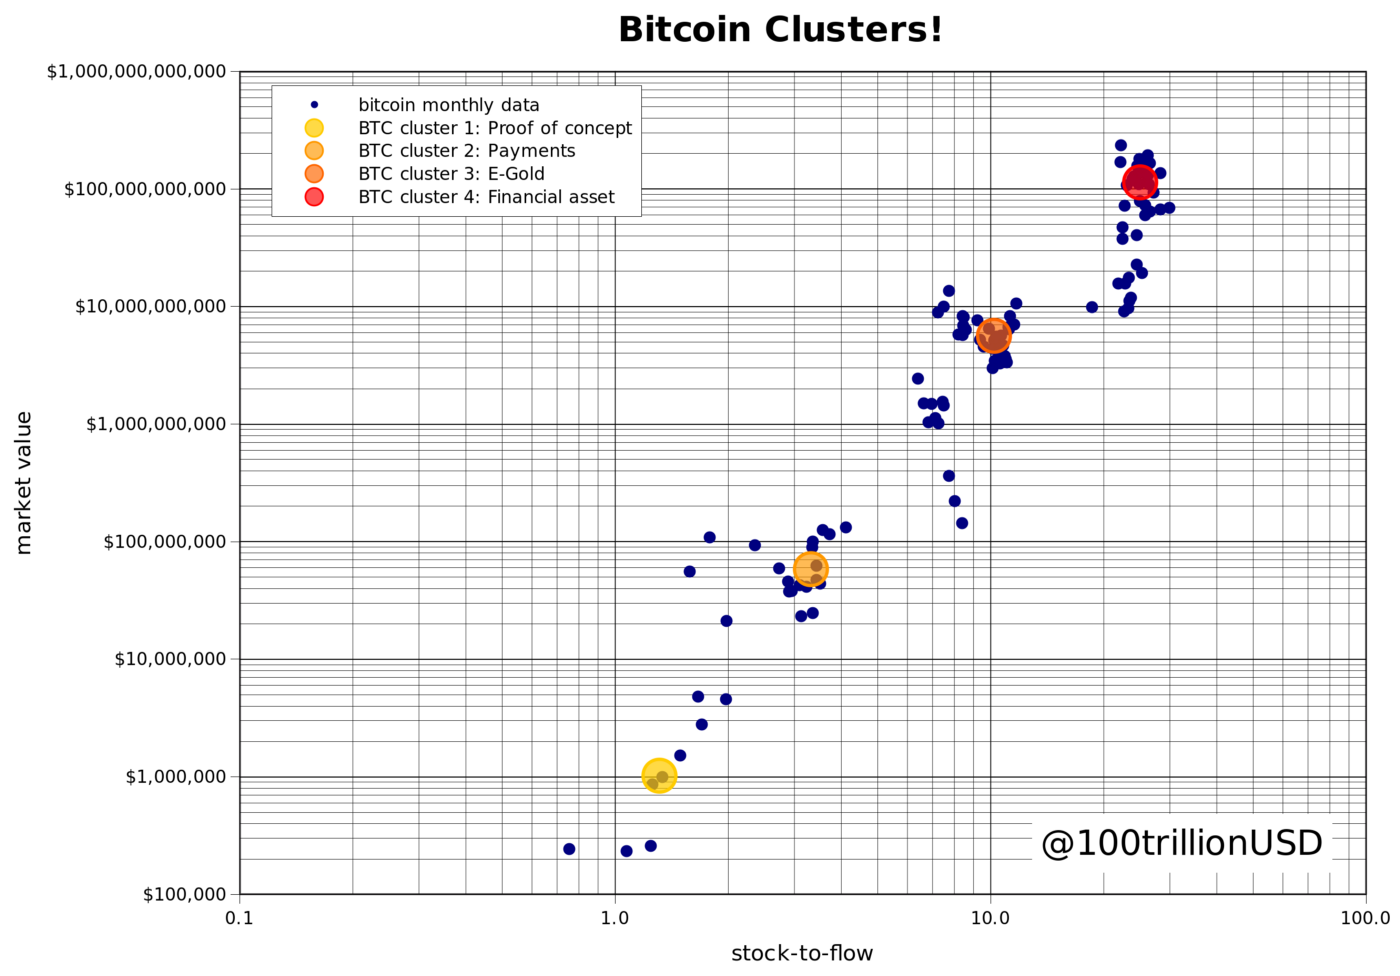 Bitcoin cluster value